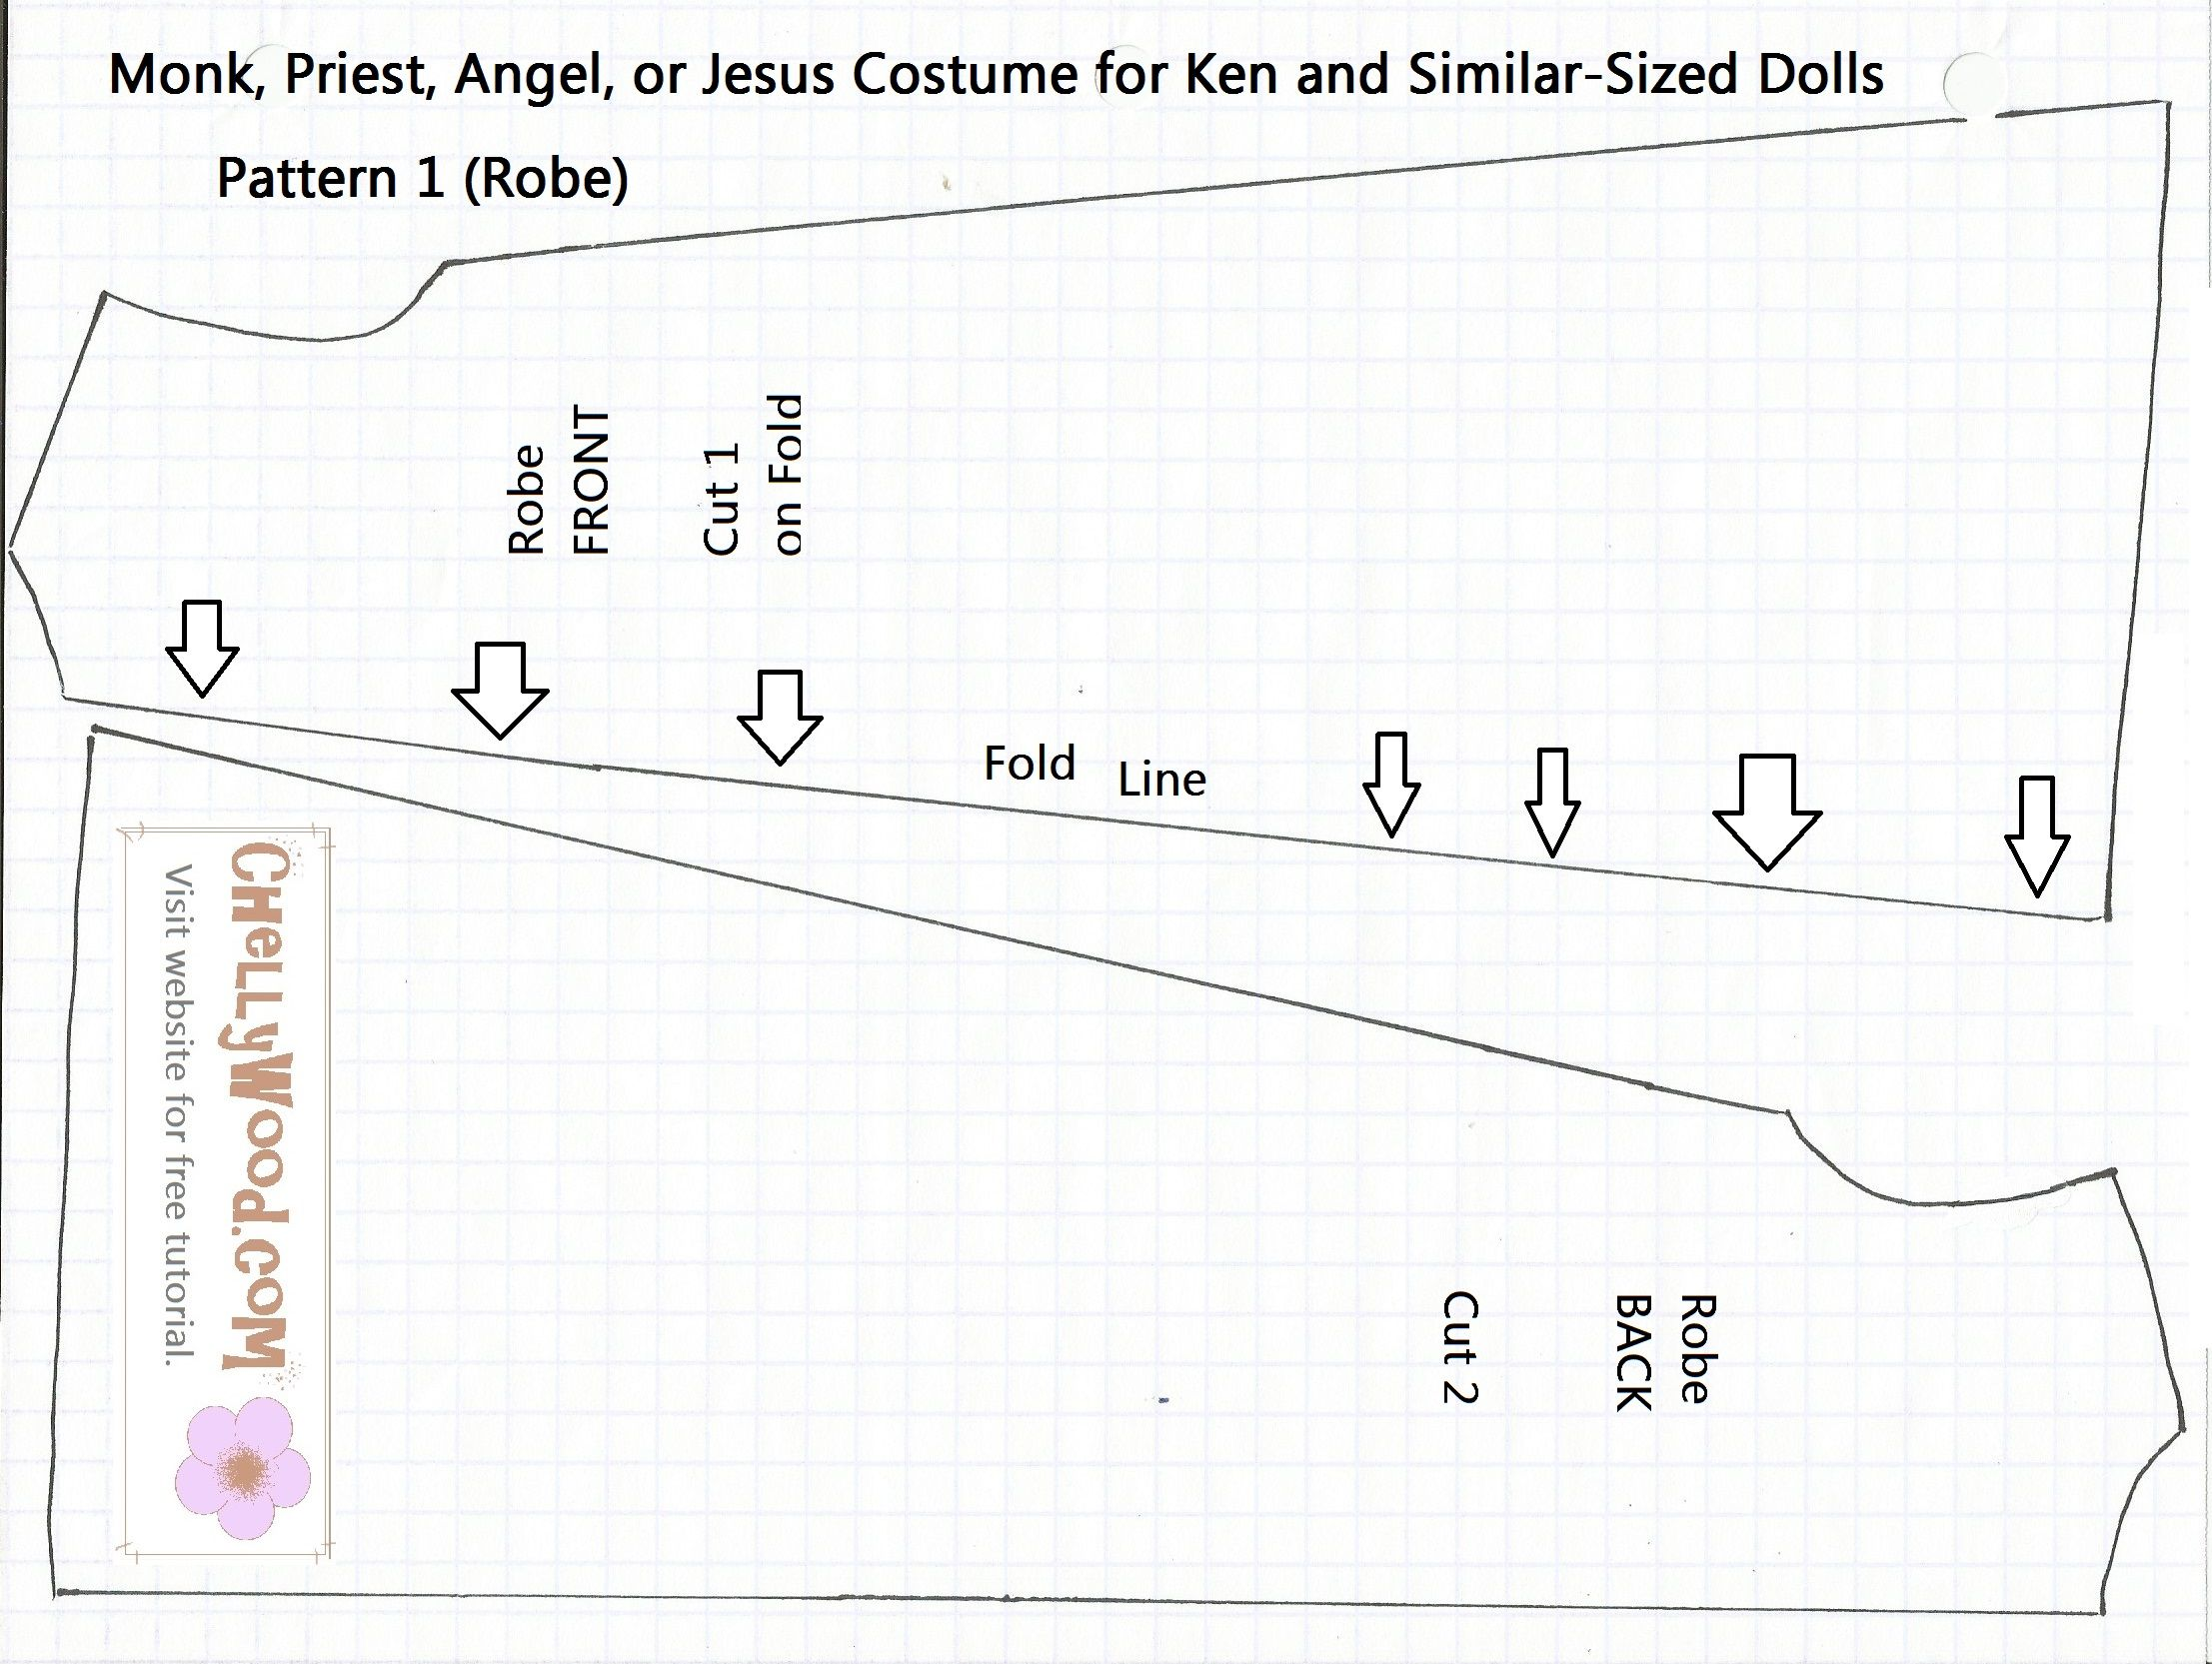 Catholic priest costume doll pattern fits Ken dolls. This website ...